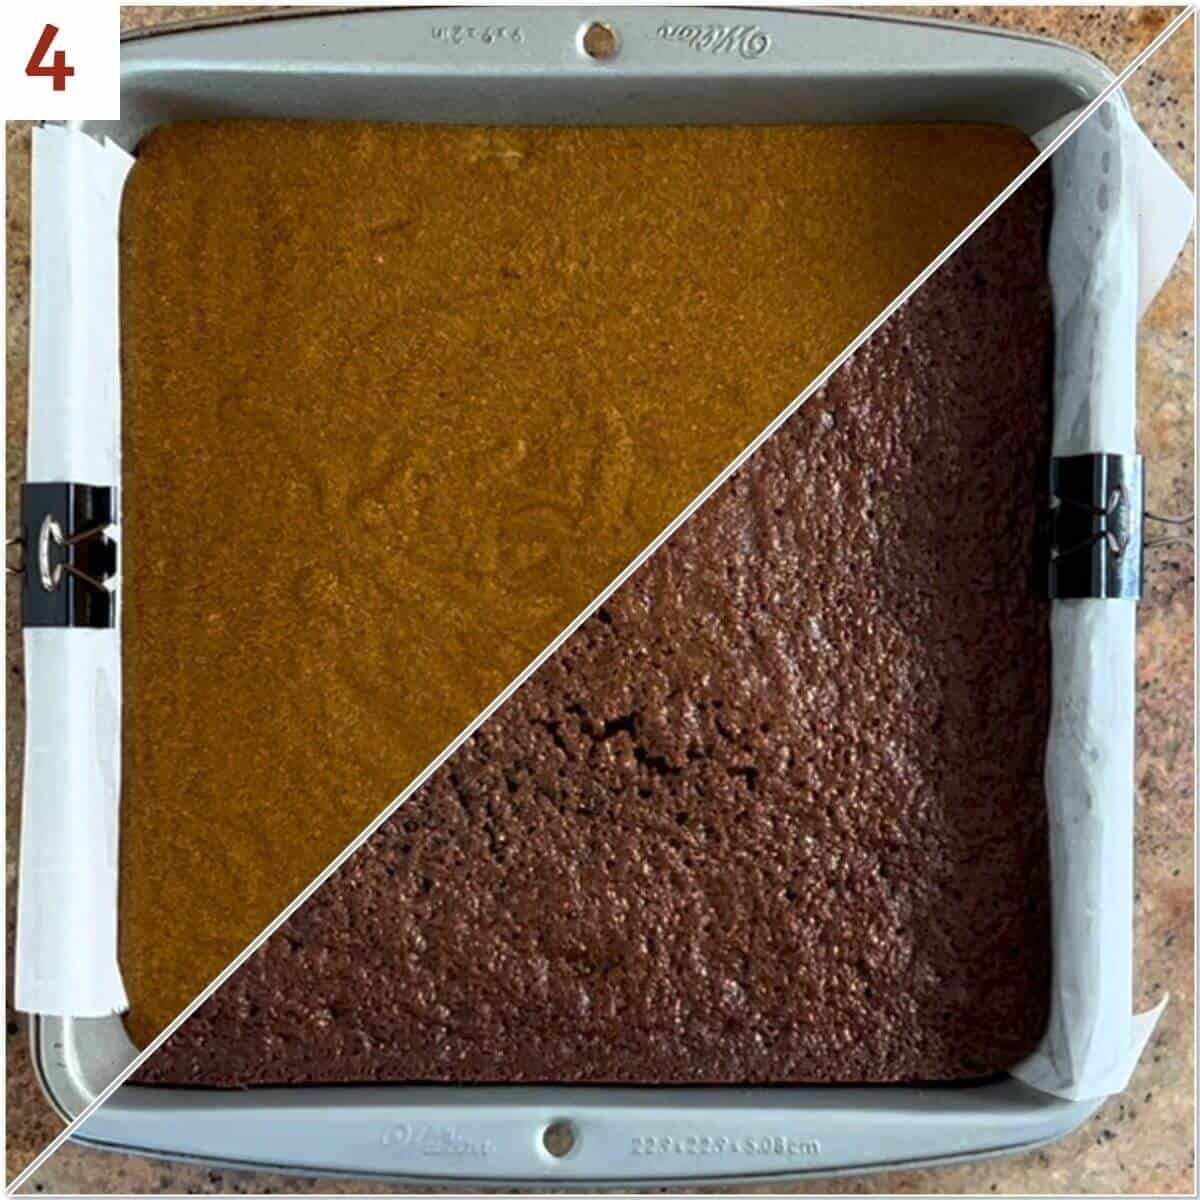 Collage of sourdough gingerbread in a baking pan before and after baking.